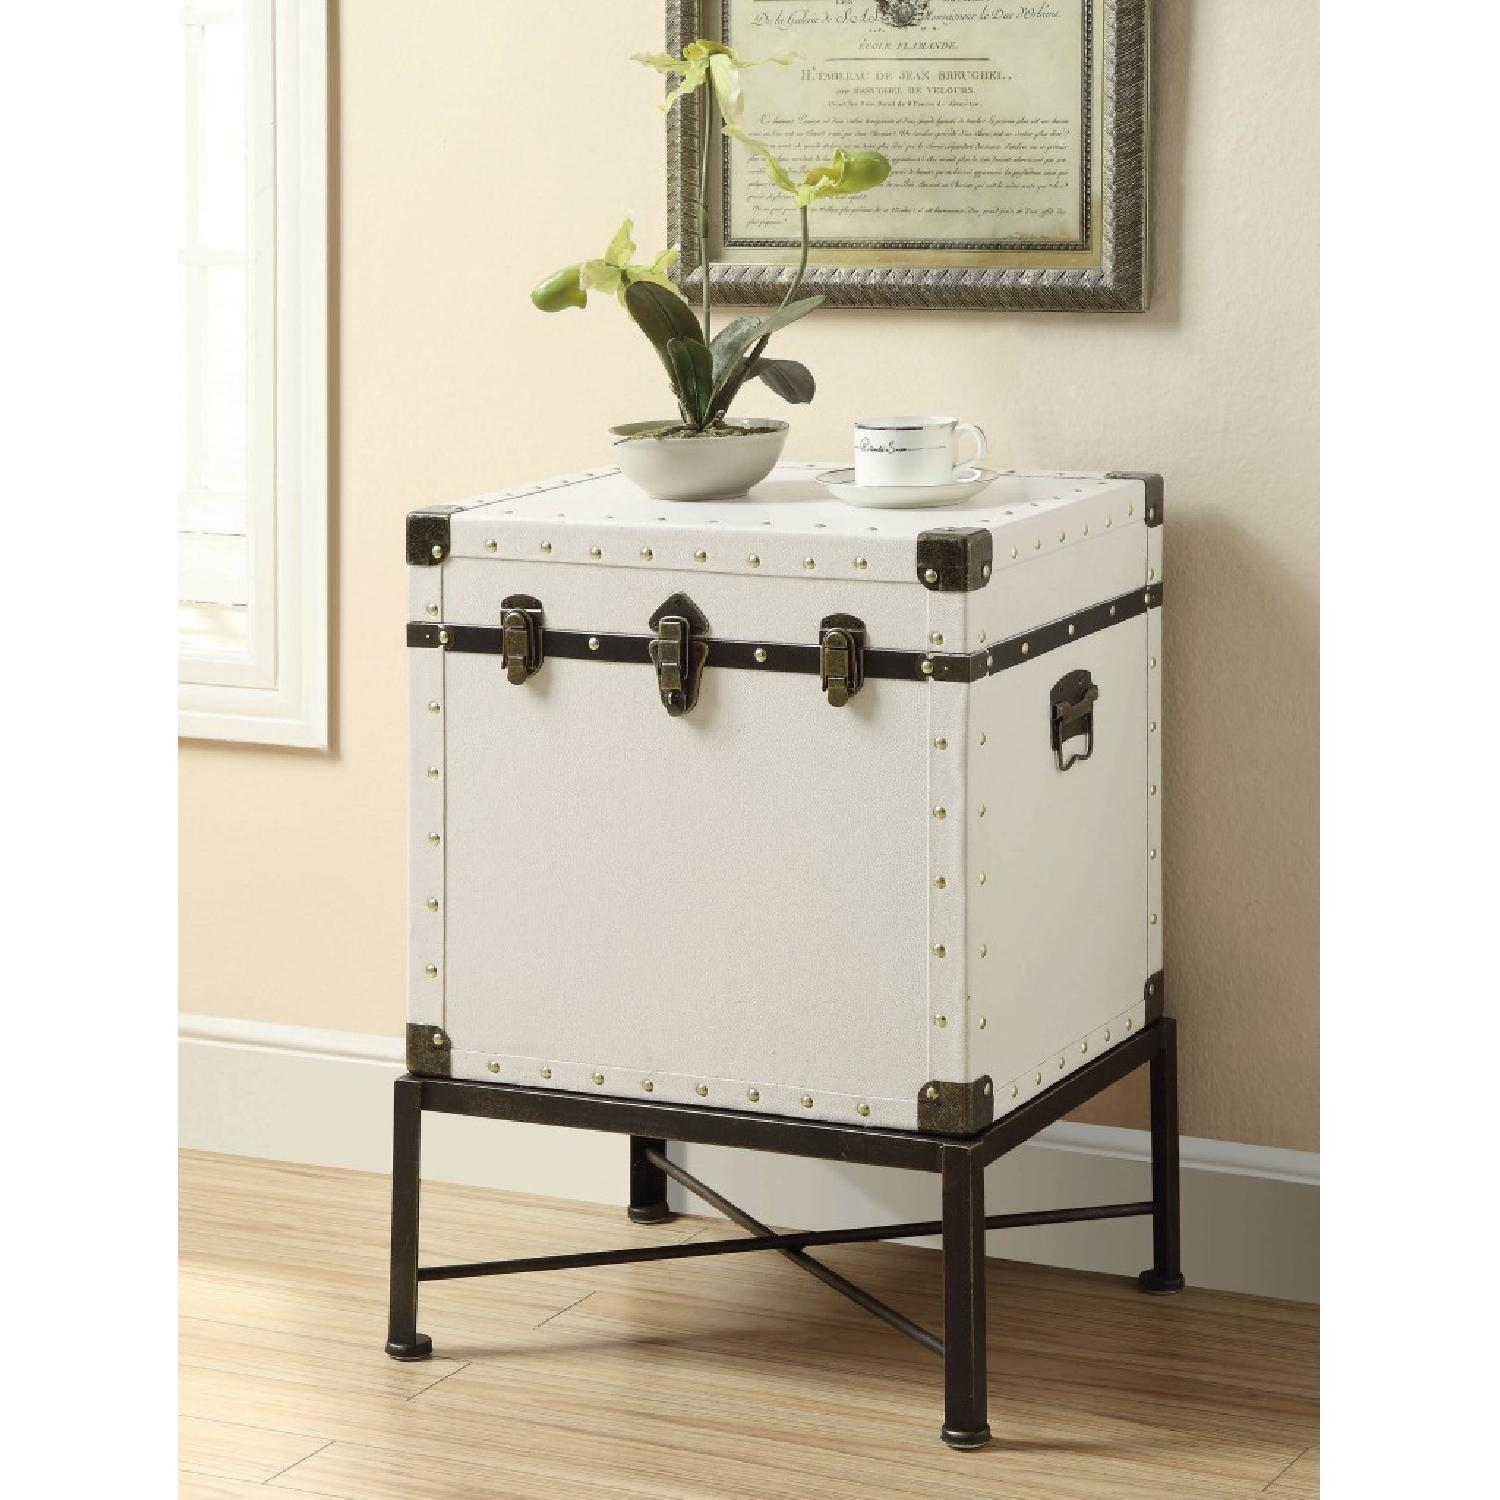 Lift Top Accent Cabinet in White w/ Nailhead Accent - image-2